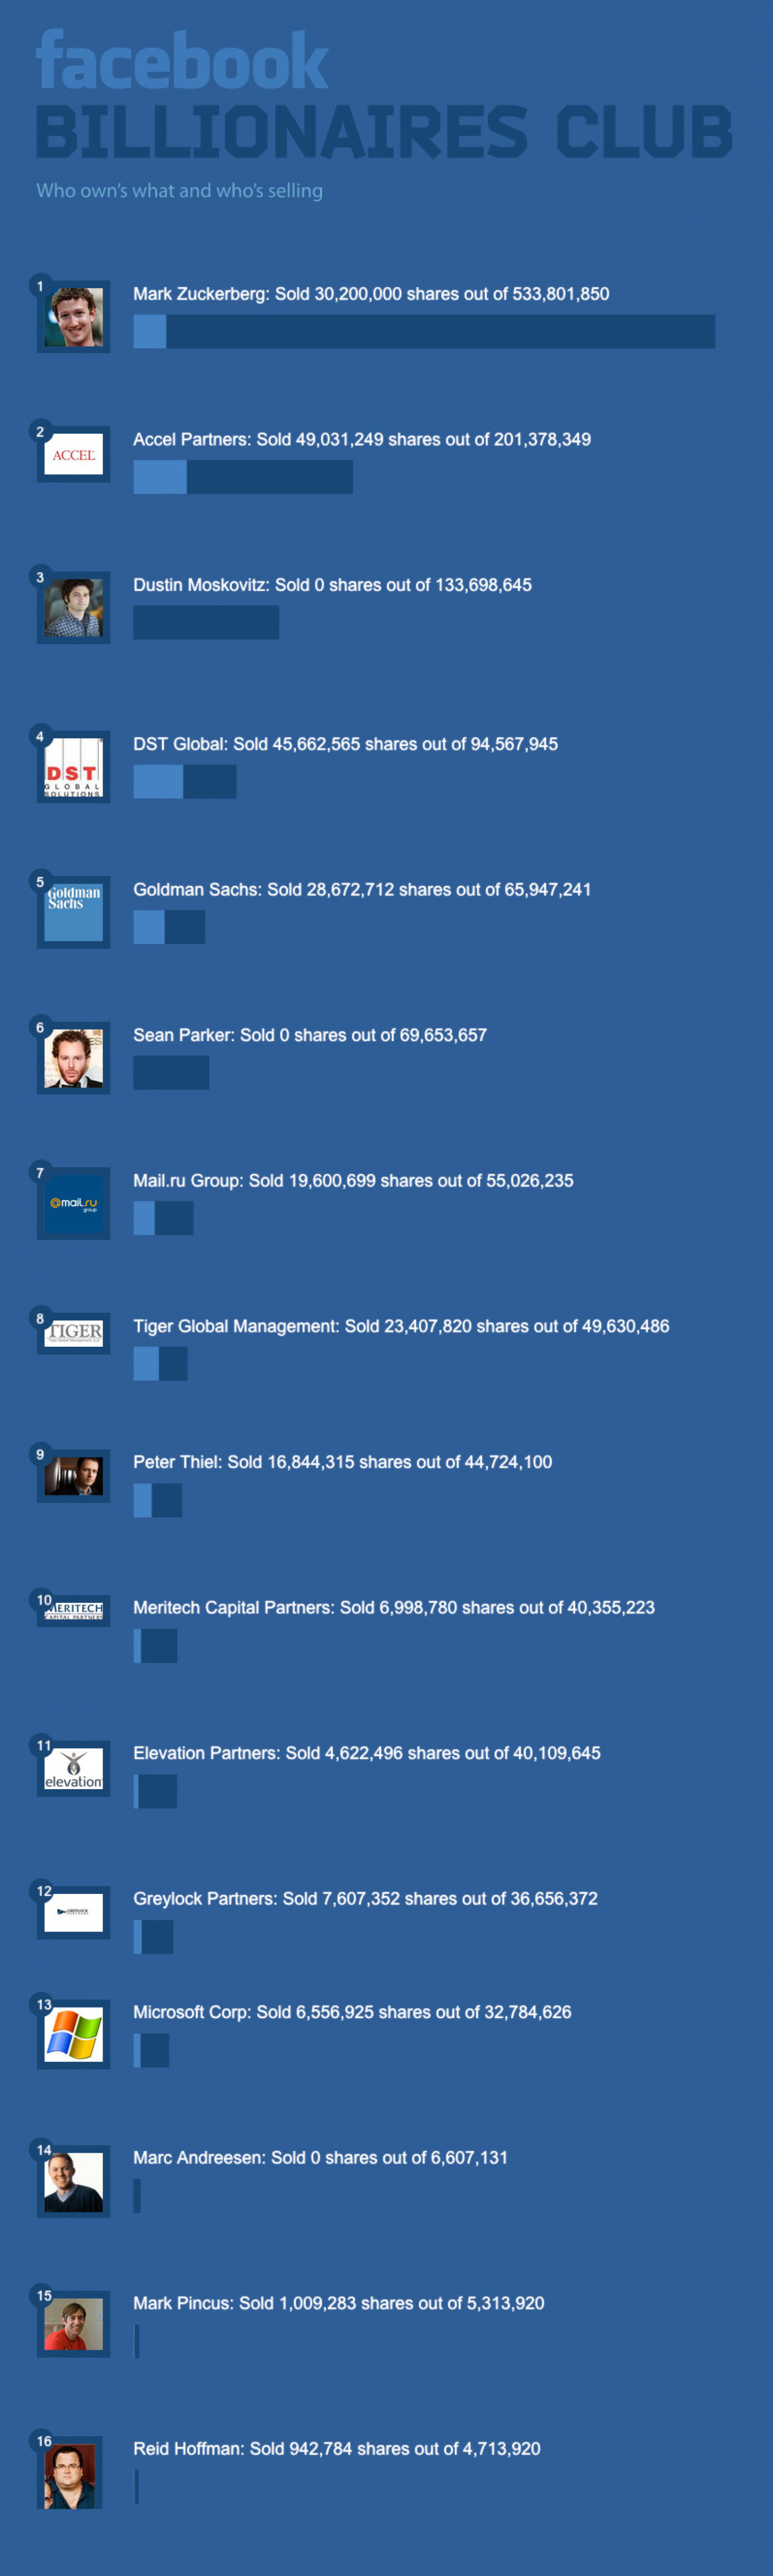 Facebook Billionaires Club Infographic